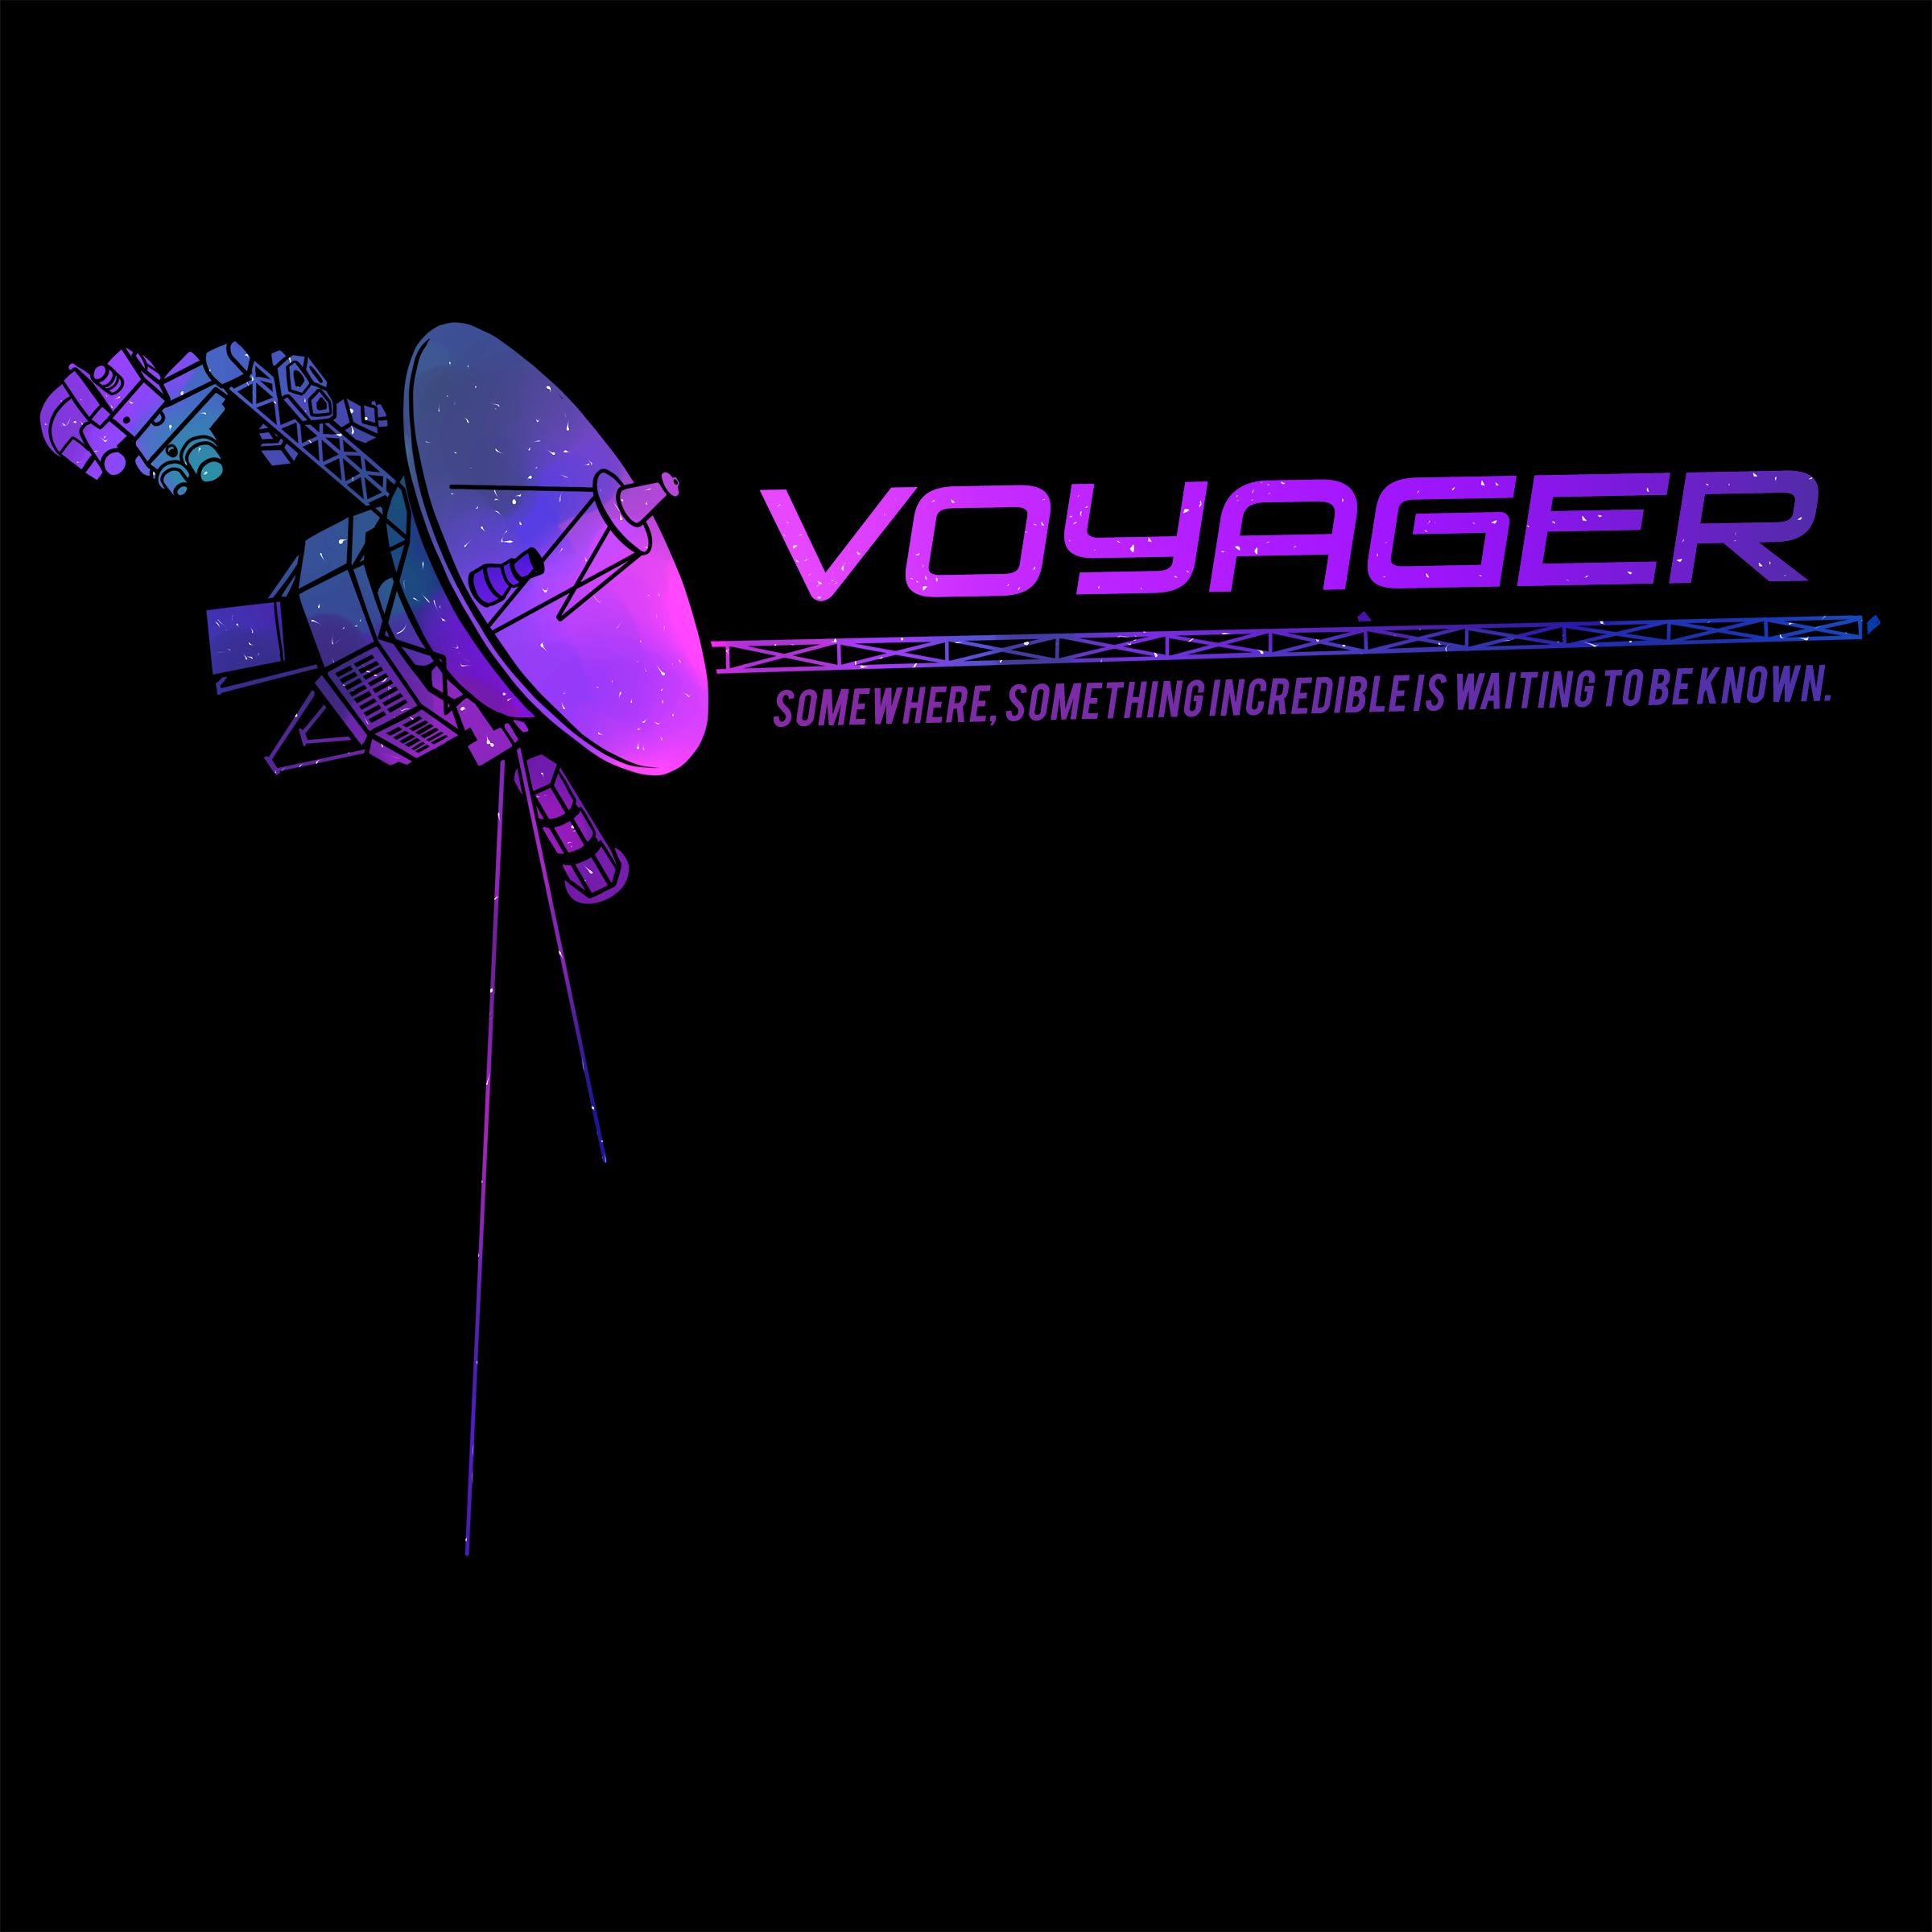 Voyager Love